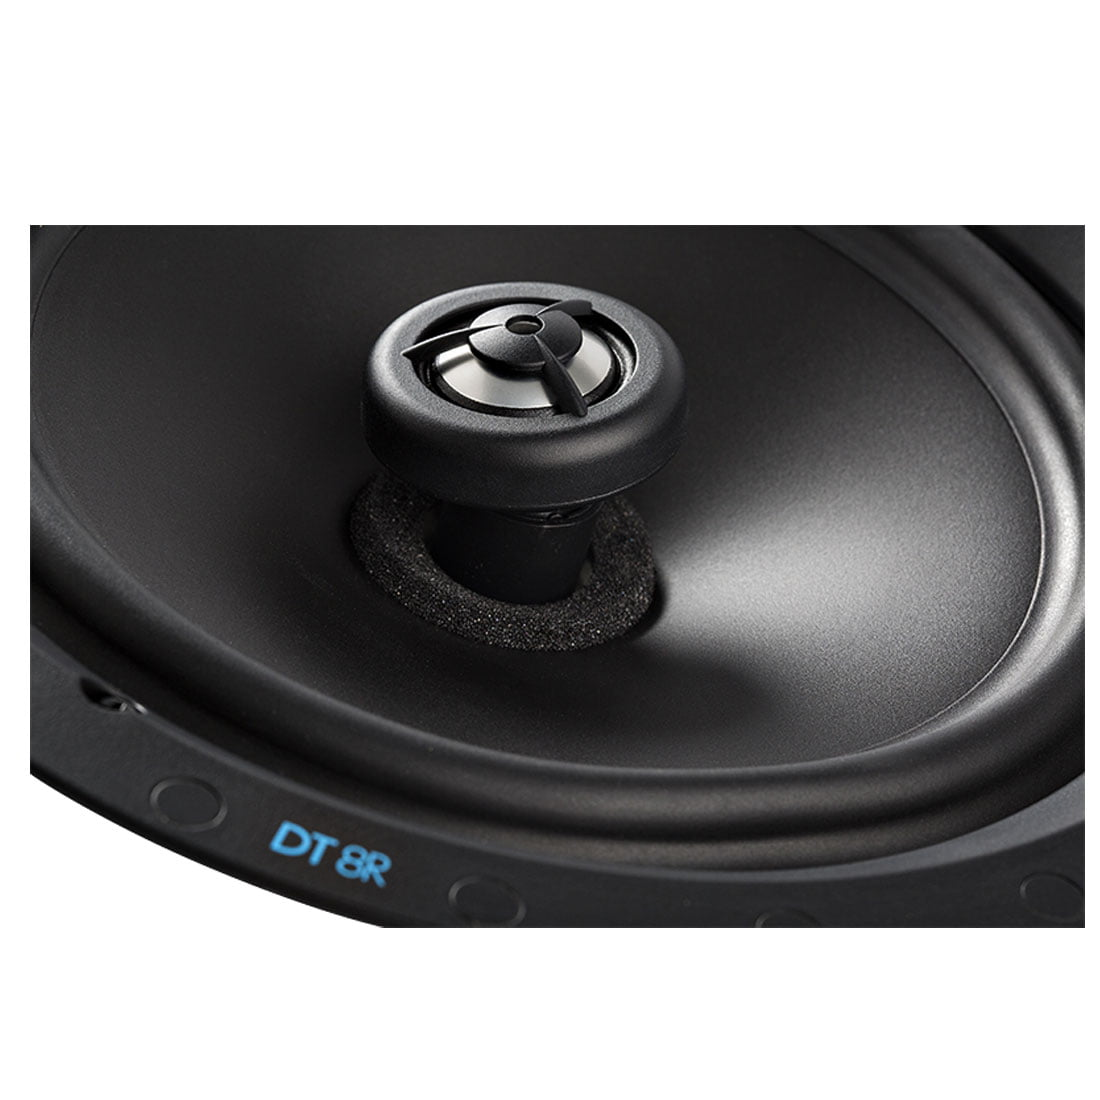 Definitive Technology Dt 8r In Ceiling Speakers Di 8r